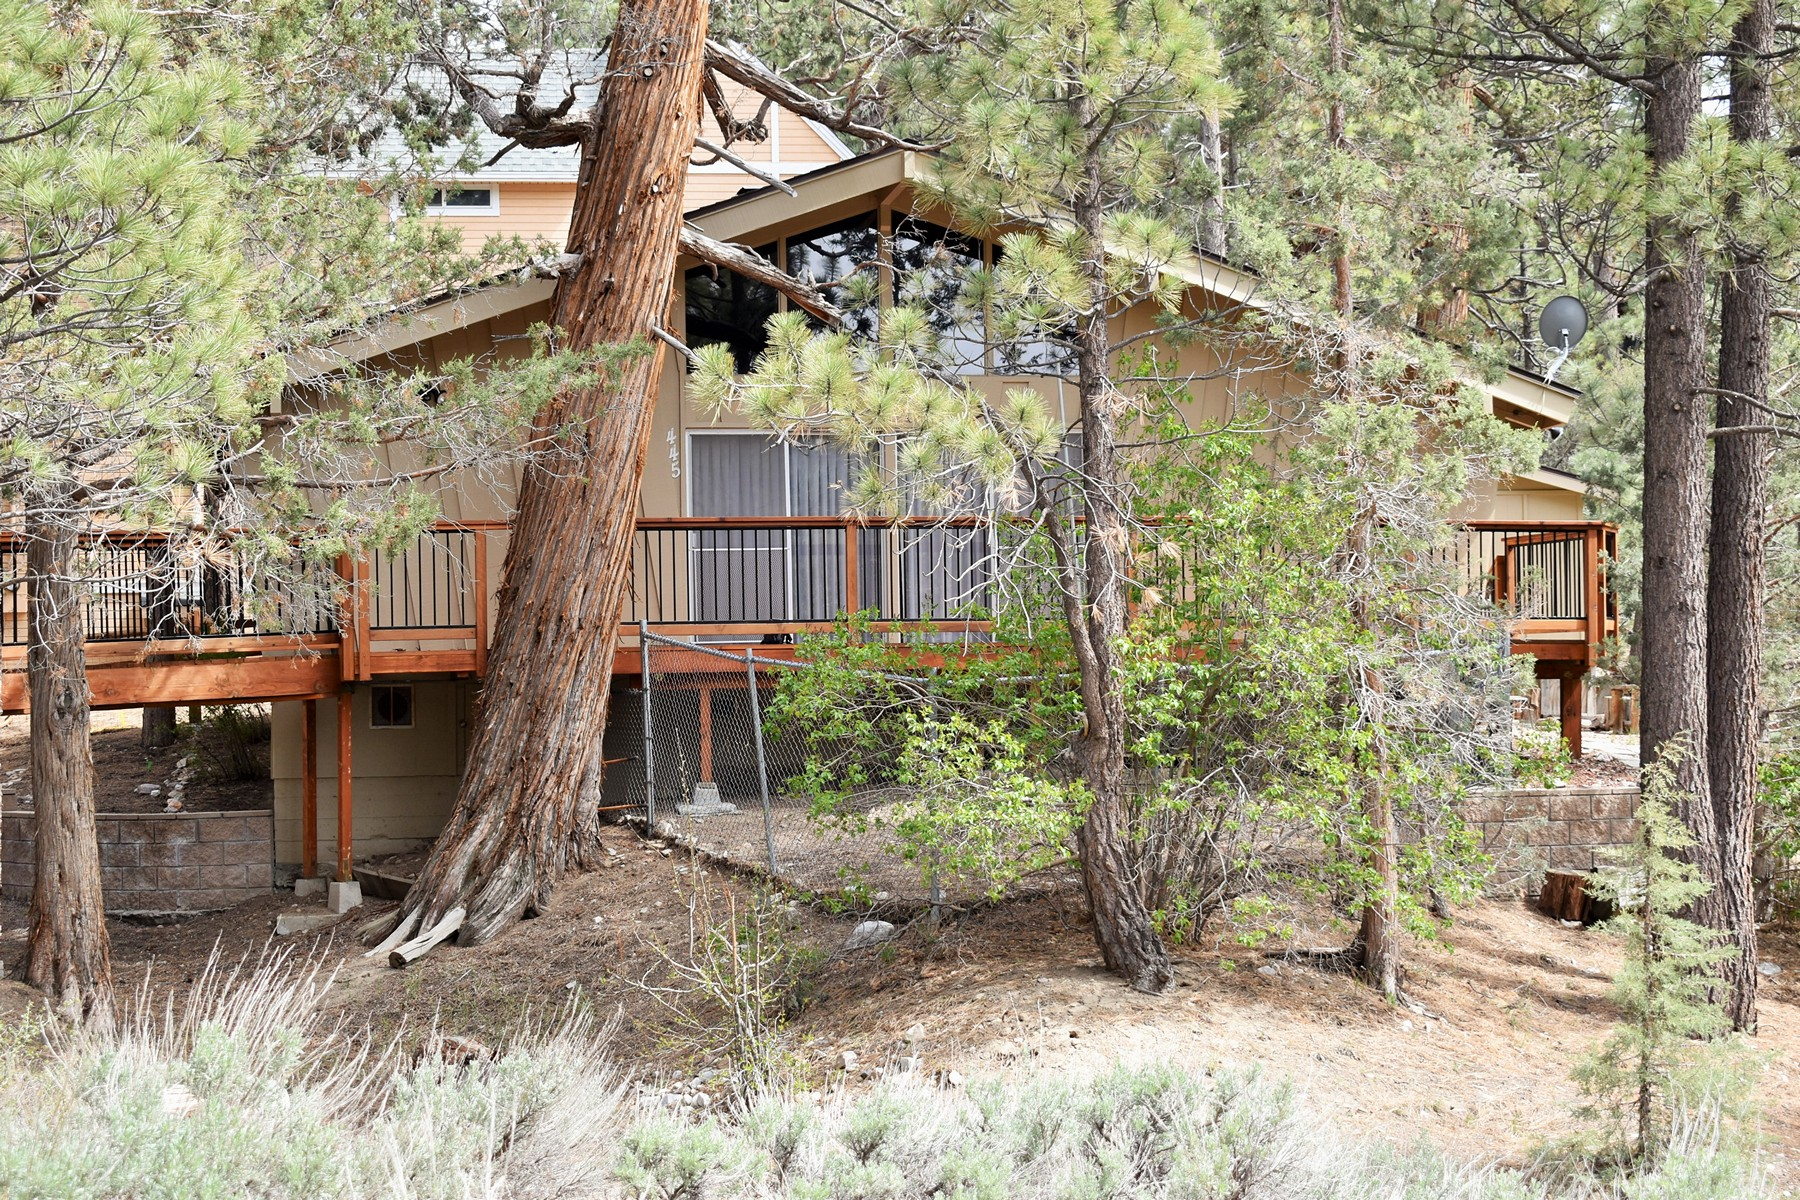 Single Family Homes for Sale at 445 Hillendale Drive Big Bear City, CA 92314 445 Hillendale Drive Big Bear City, California 92314 United States